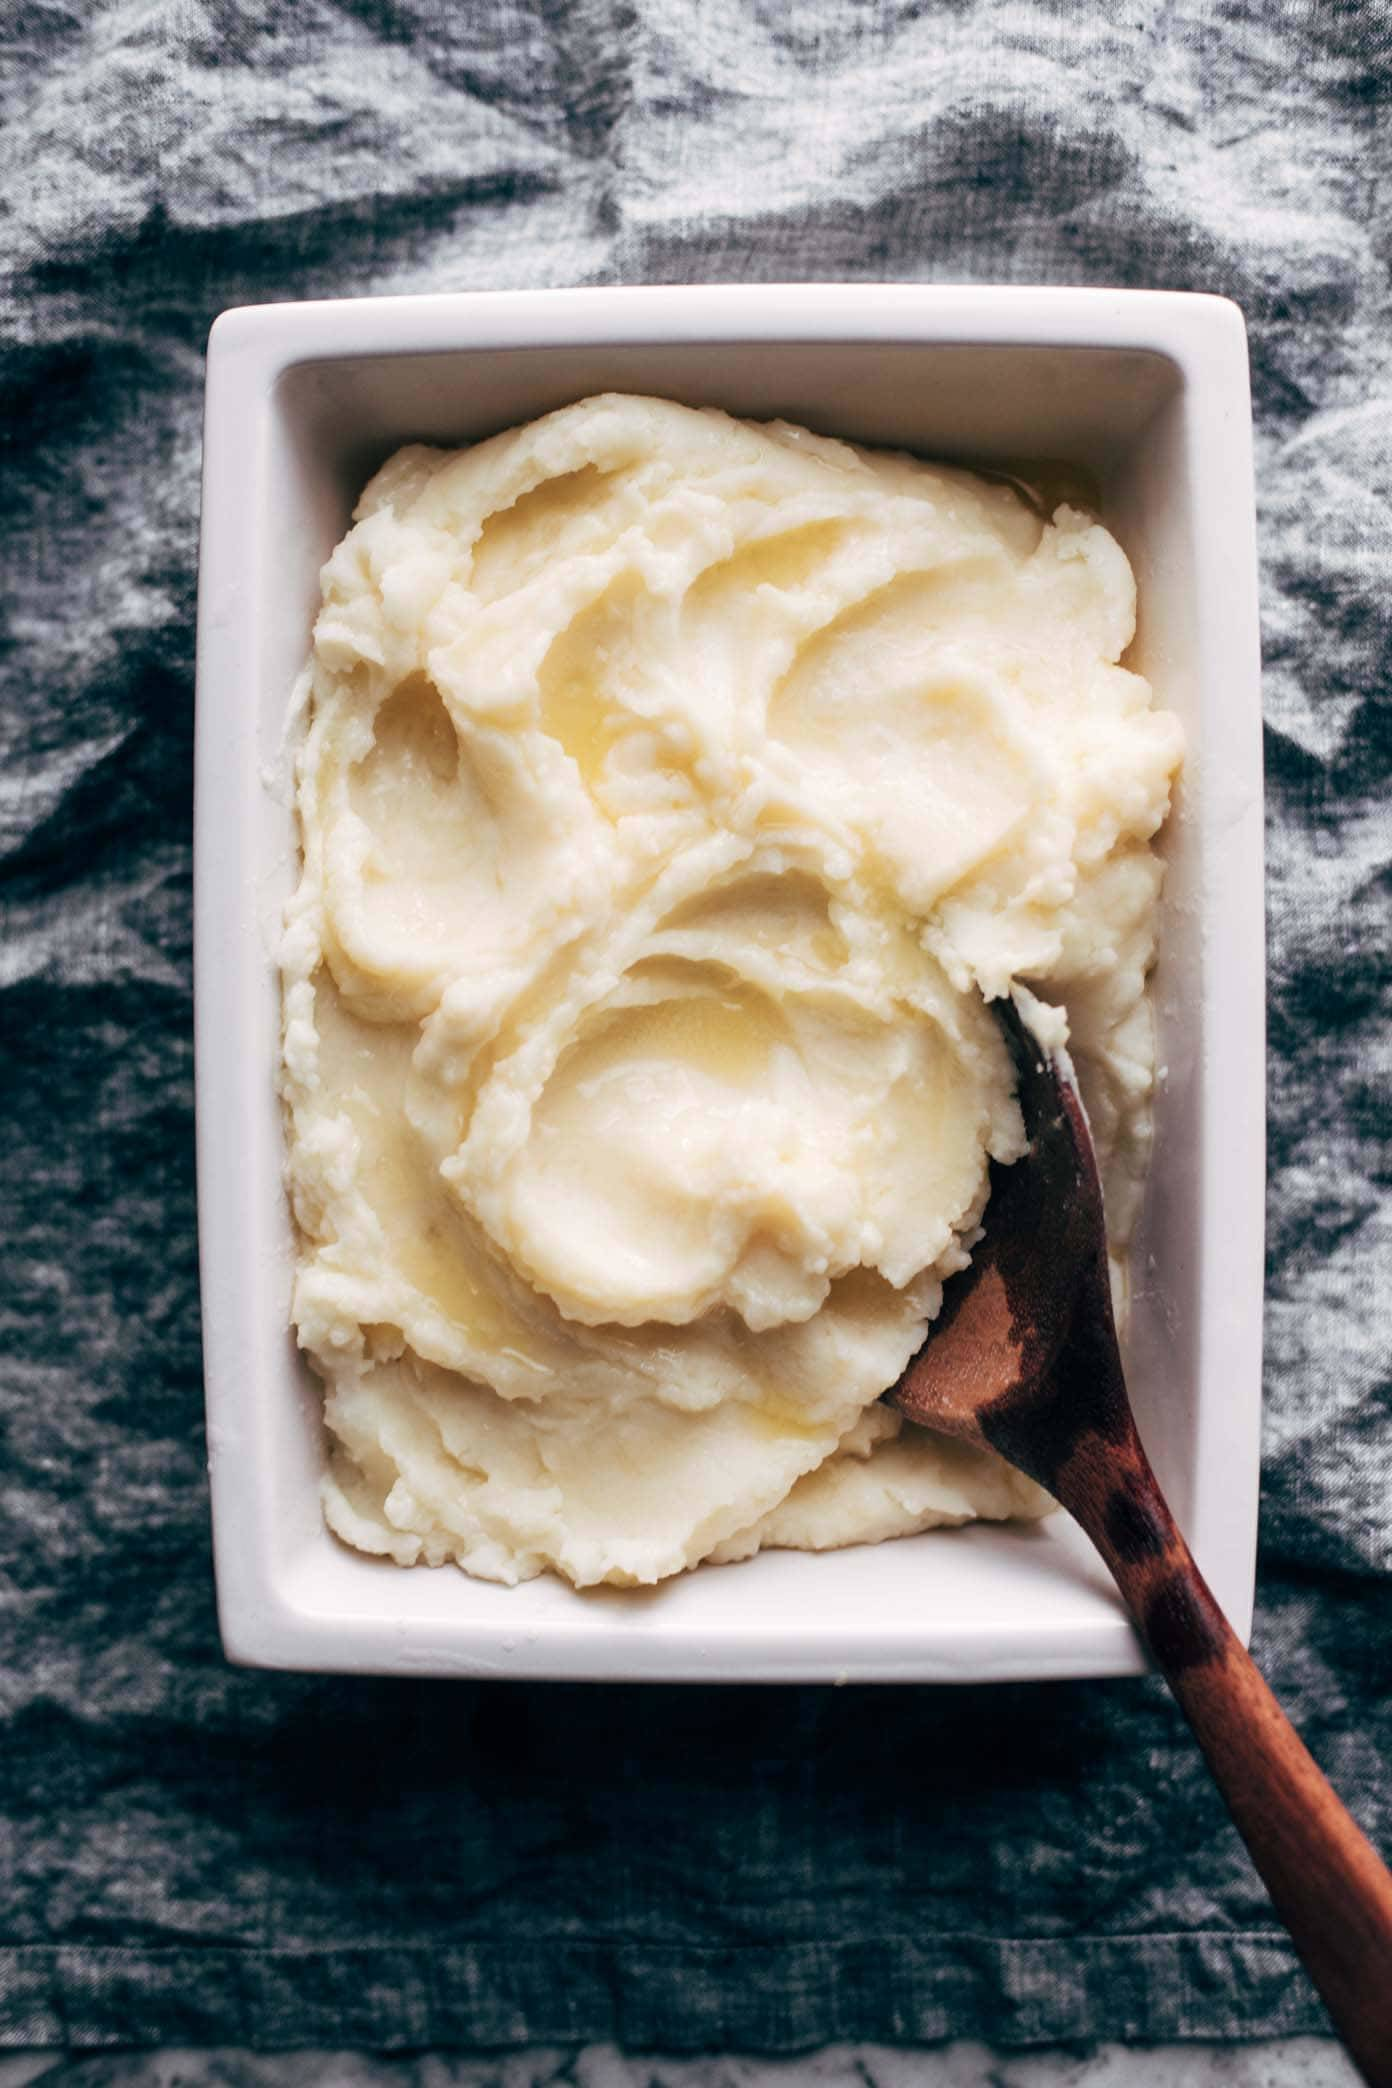 Mashed Potatoes in a dish with a wooden spoon.